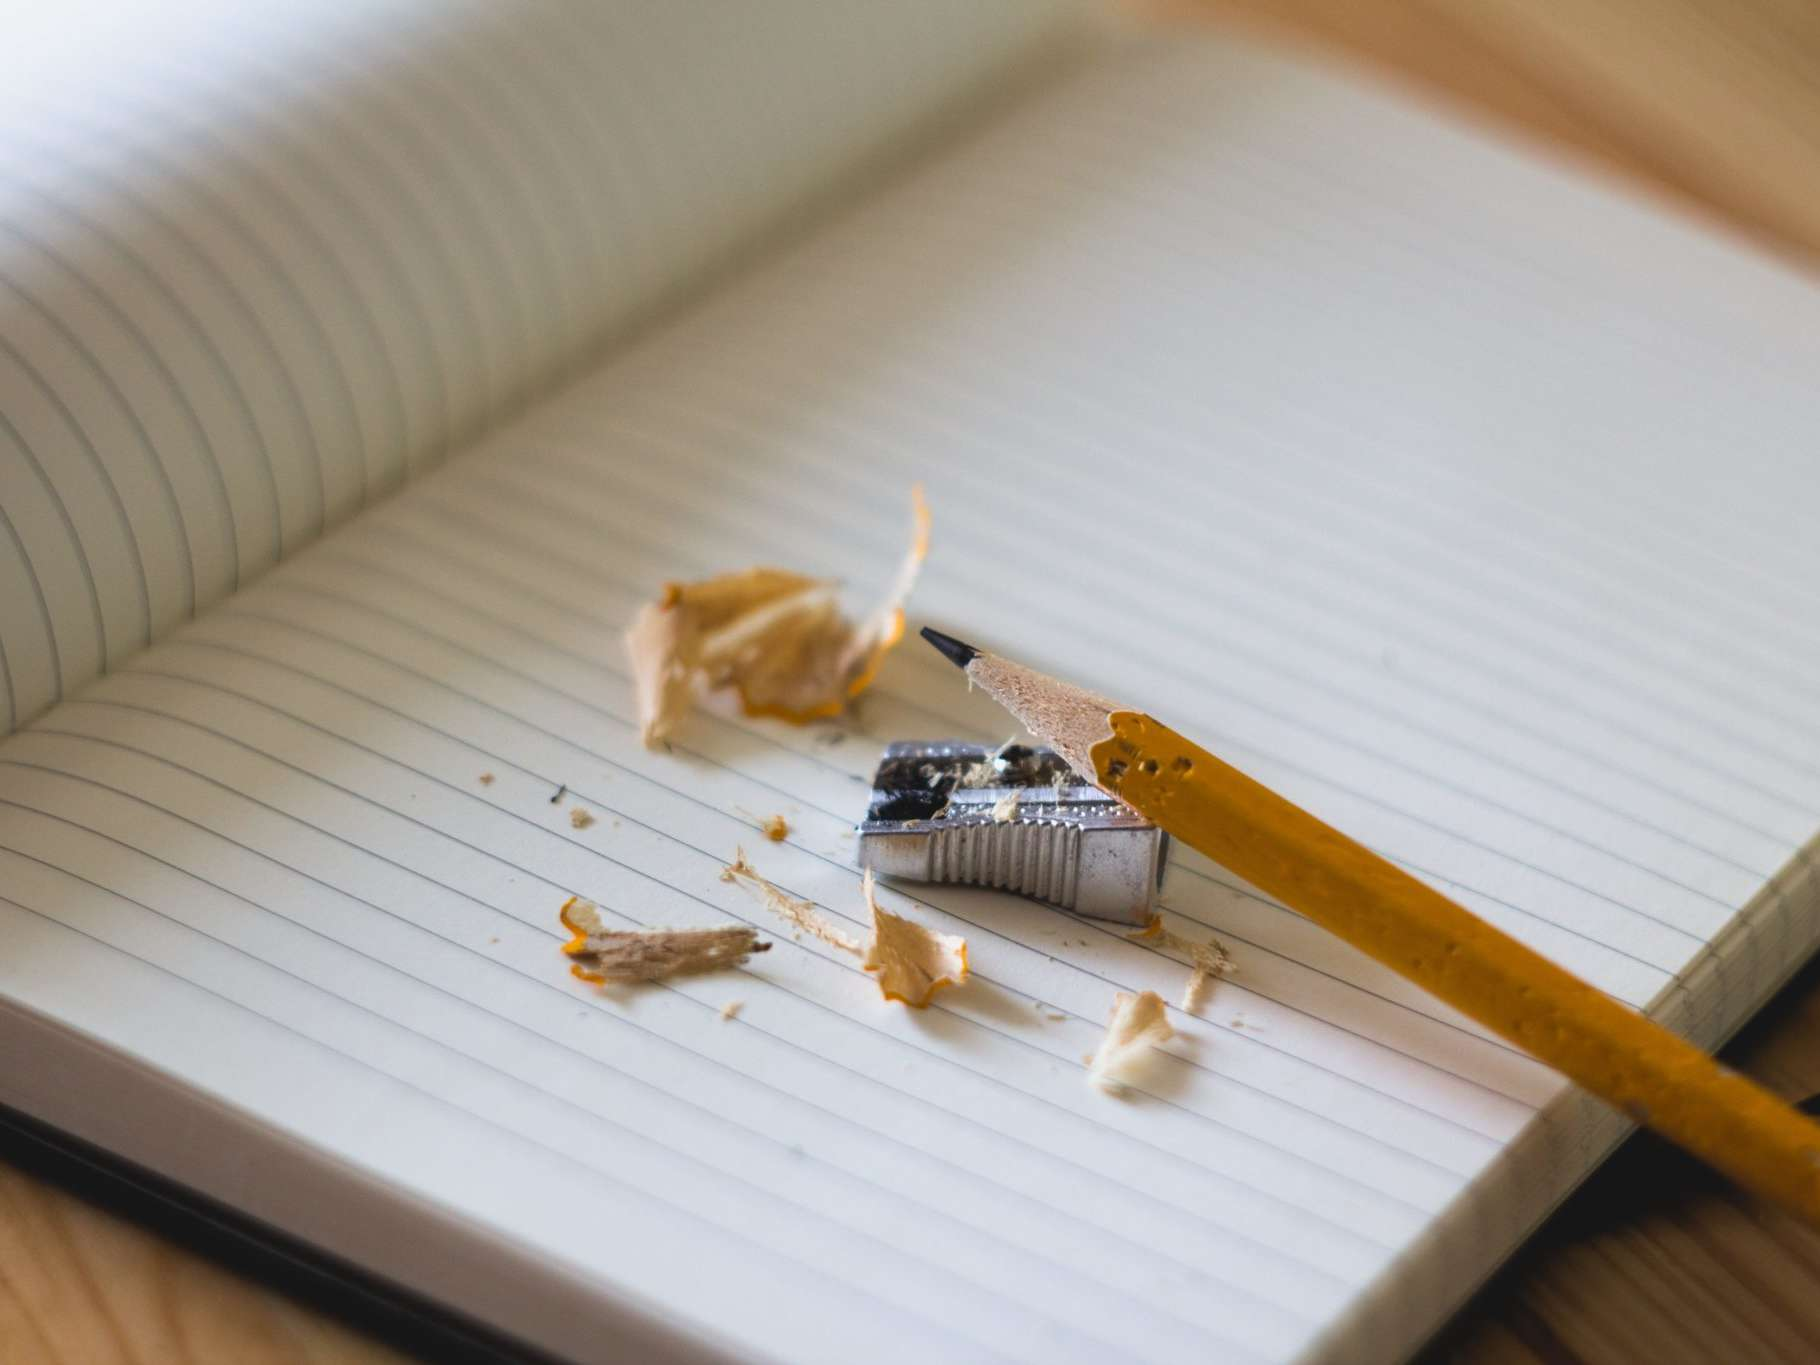 An image of a notebook with pencil shavings on top of it